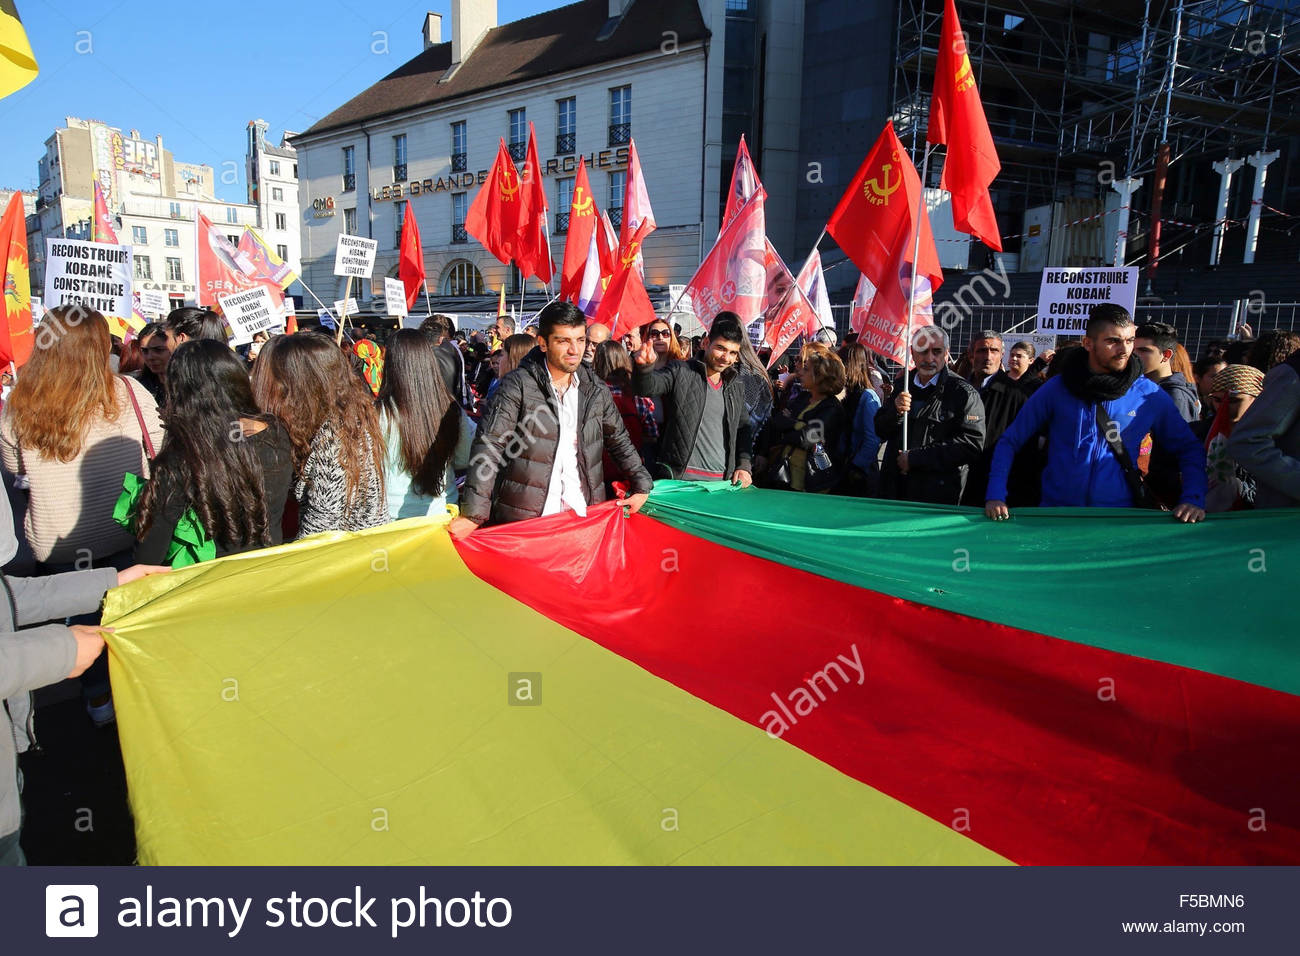 Paris, France. novembre 1st, 2015. FRANCE, Paris: People hold the kurdish flag during a pro kurdish demonstration Stock Photo